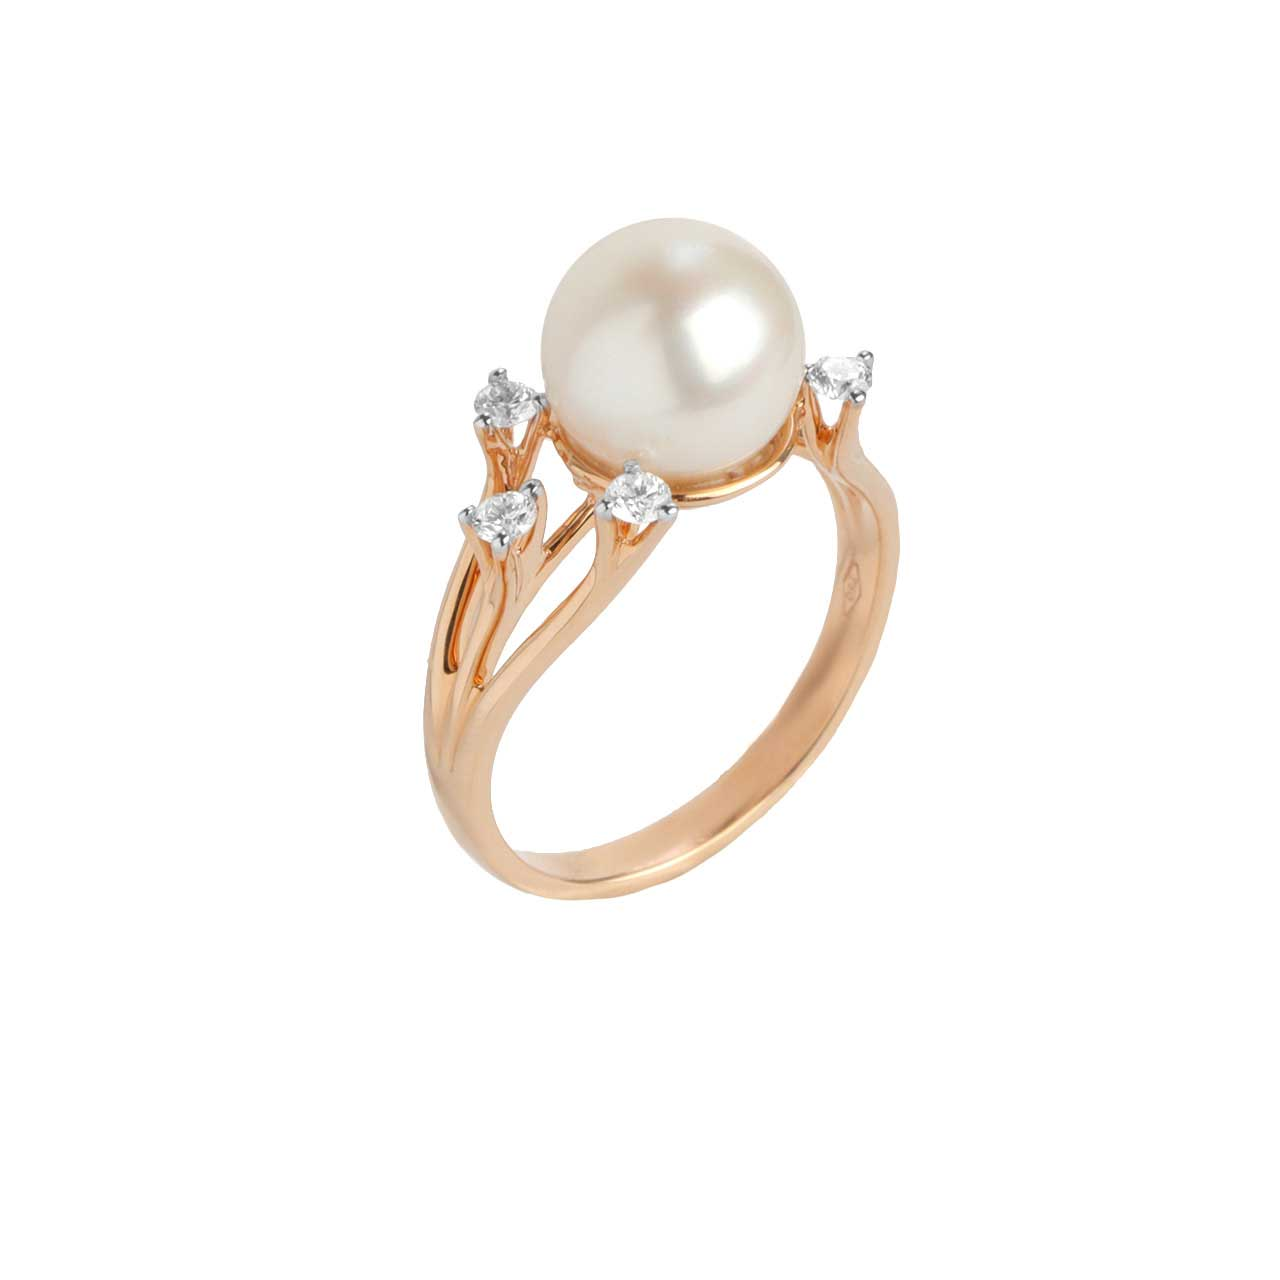 Pearl Ring Features 5 Diamonds